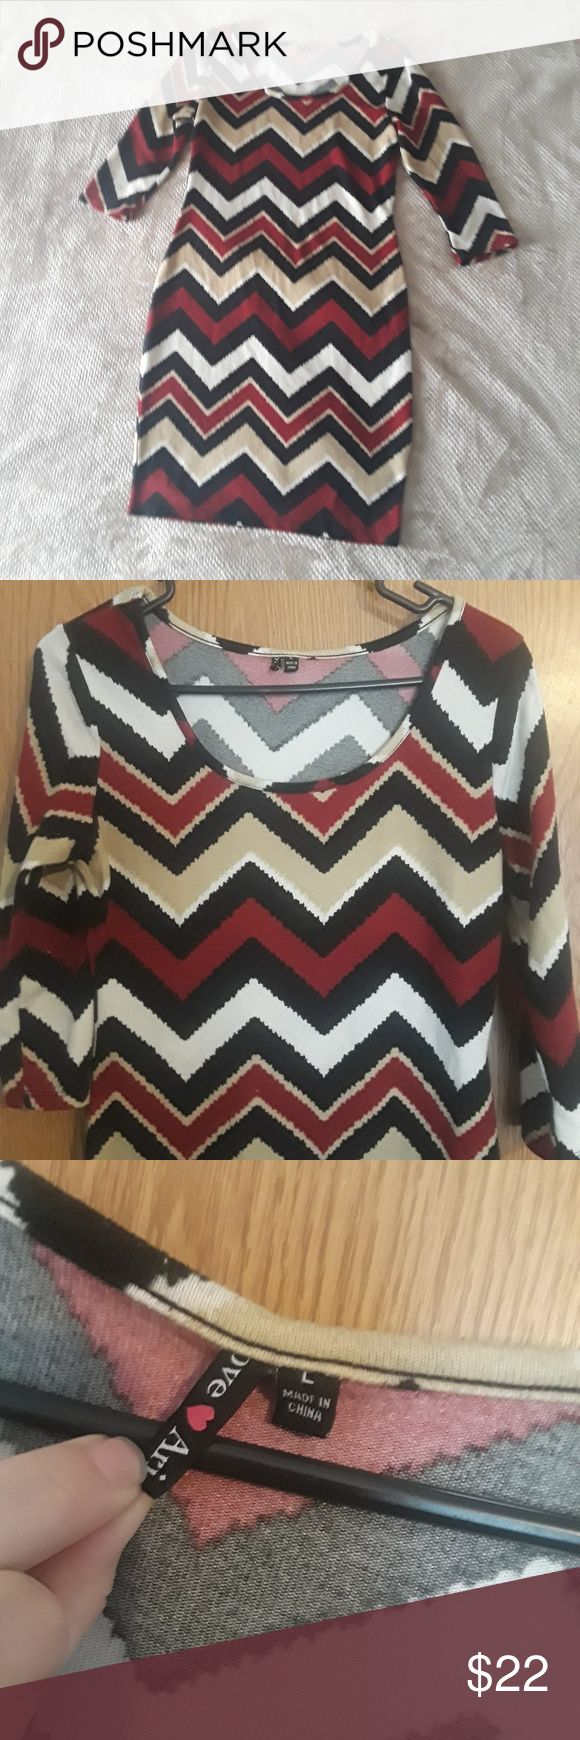 Chevron print dress Love Ari Black, white, brick, khaki  Sweater dress Size: Large 95% Polyester, 5% Spandex   -Fitted; mid length; half length sleeves; super soft.   This item is in very good used condition. There is some slight piling; no tears, snags or stains. Love Ari Dresses Midi